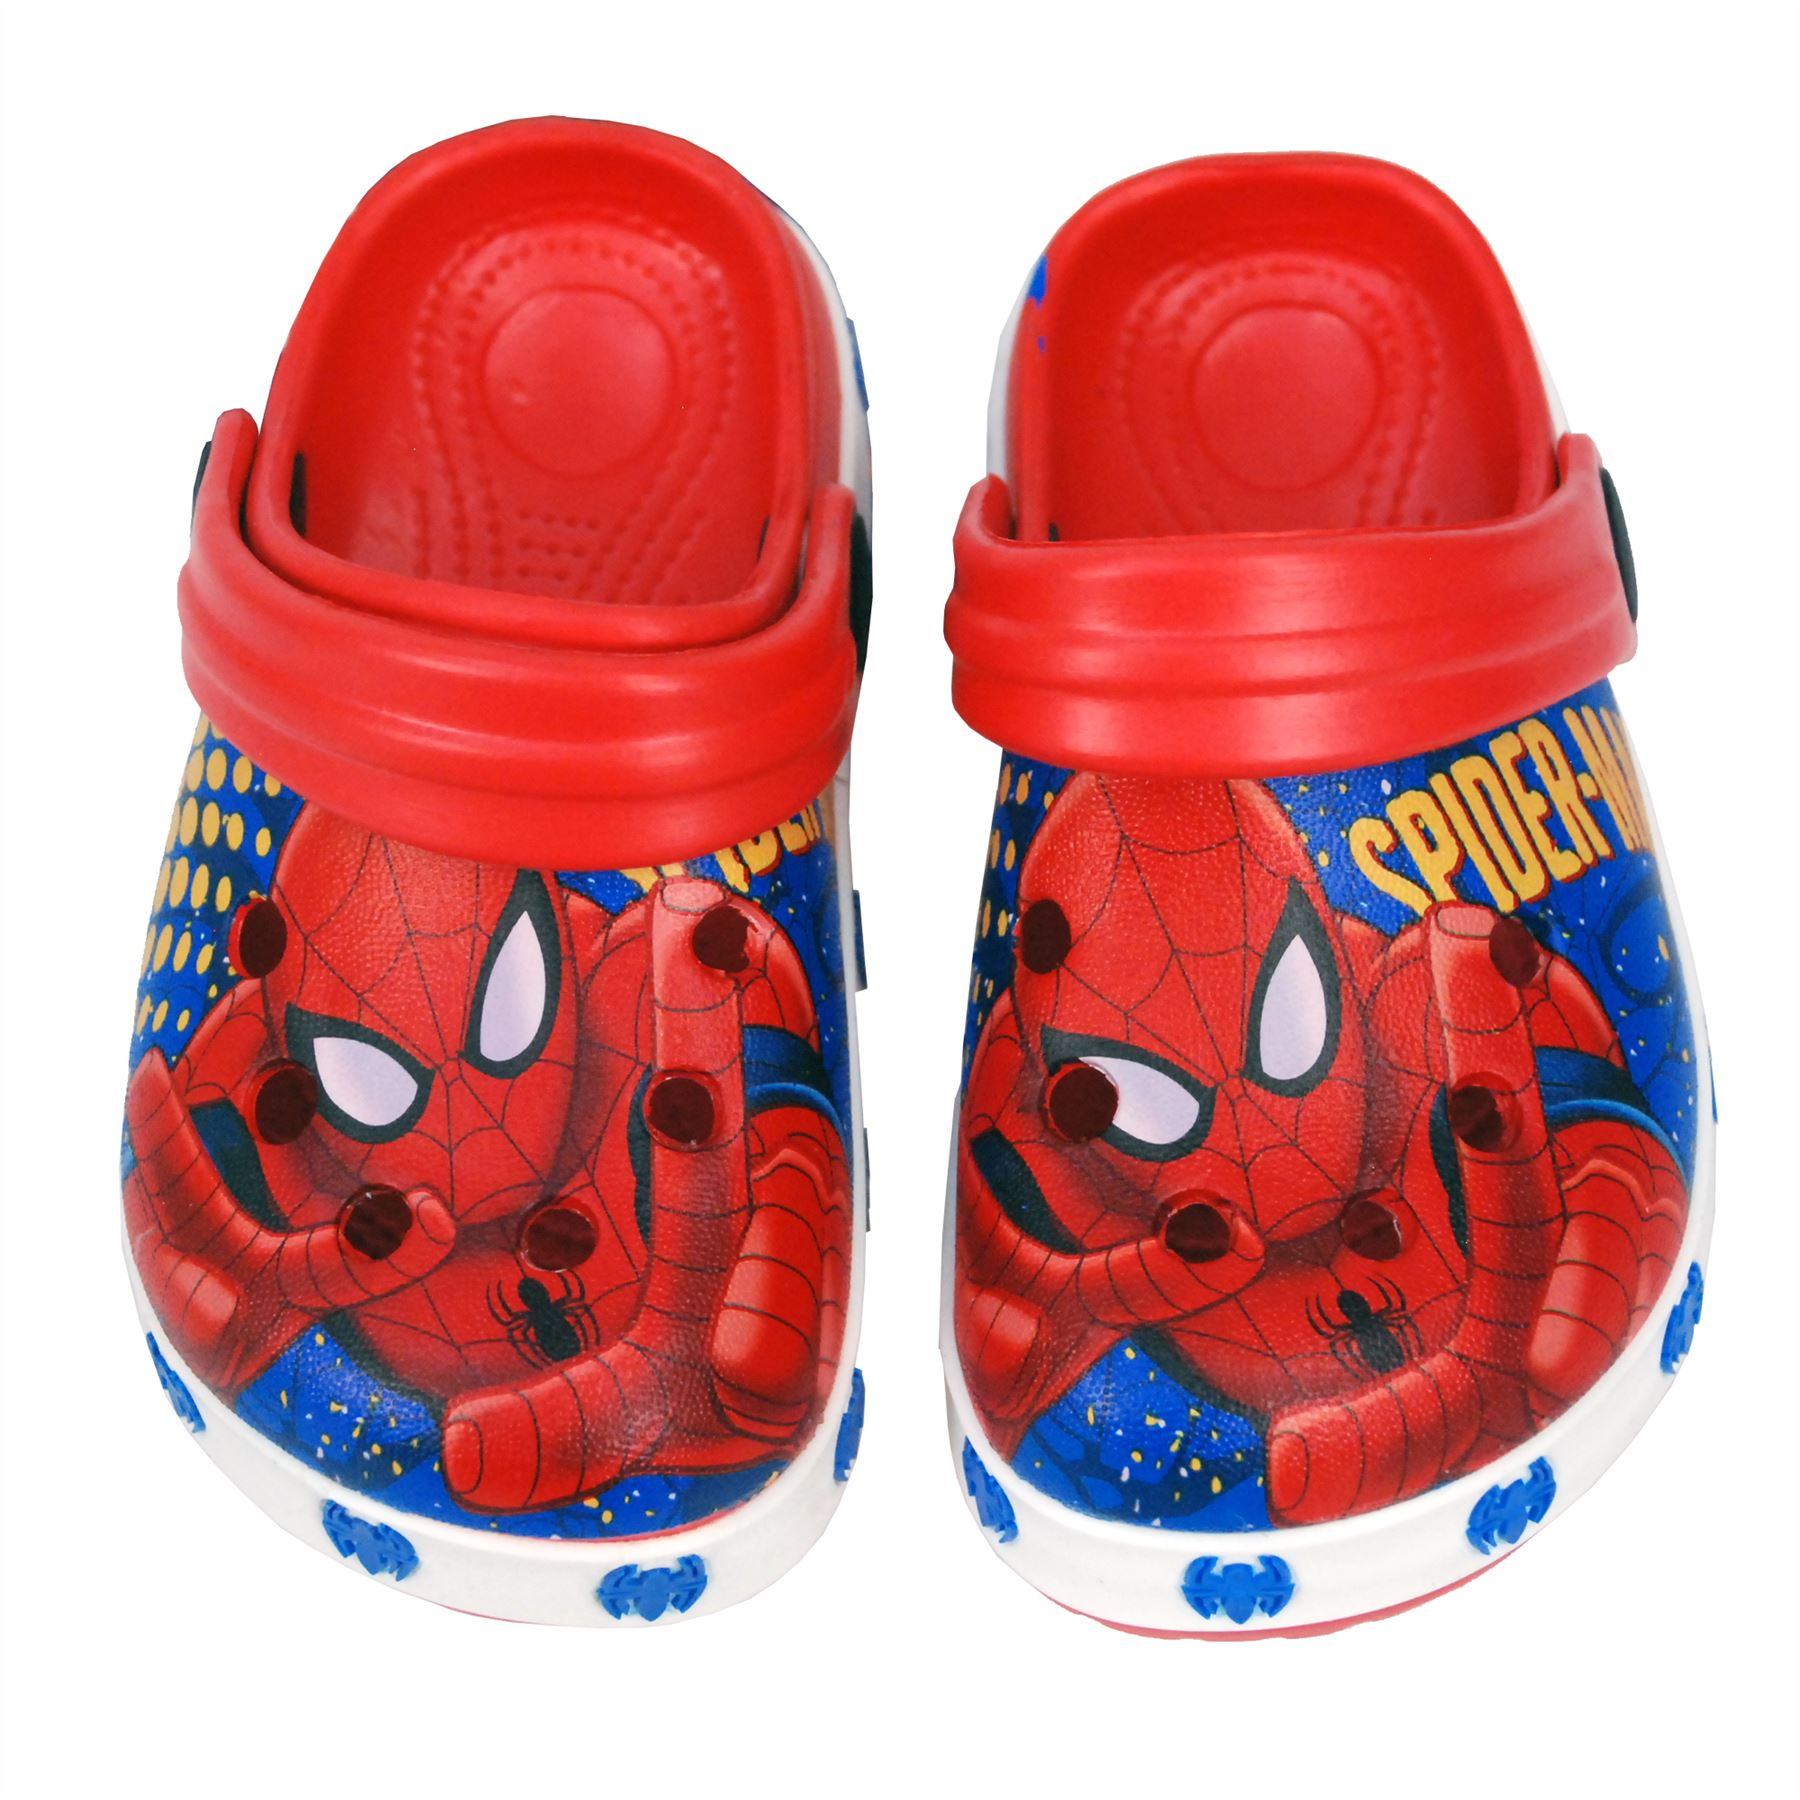 71f9eb3d9 Marvel® Spider Man Kids Boys Sandals Beach Slippers Shoes UK Sizes 5 to 1